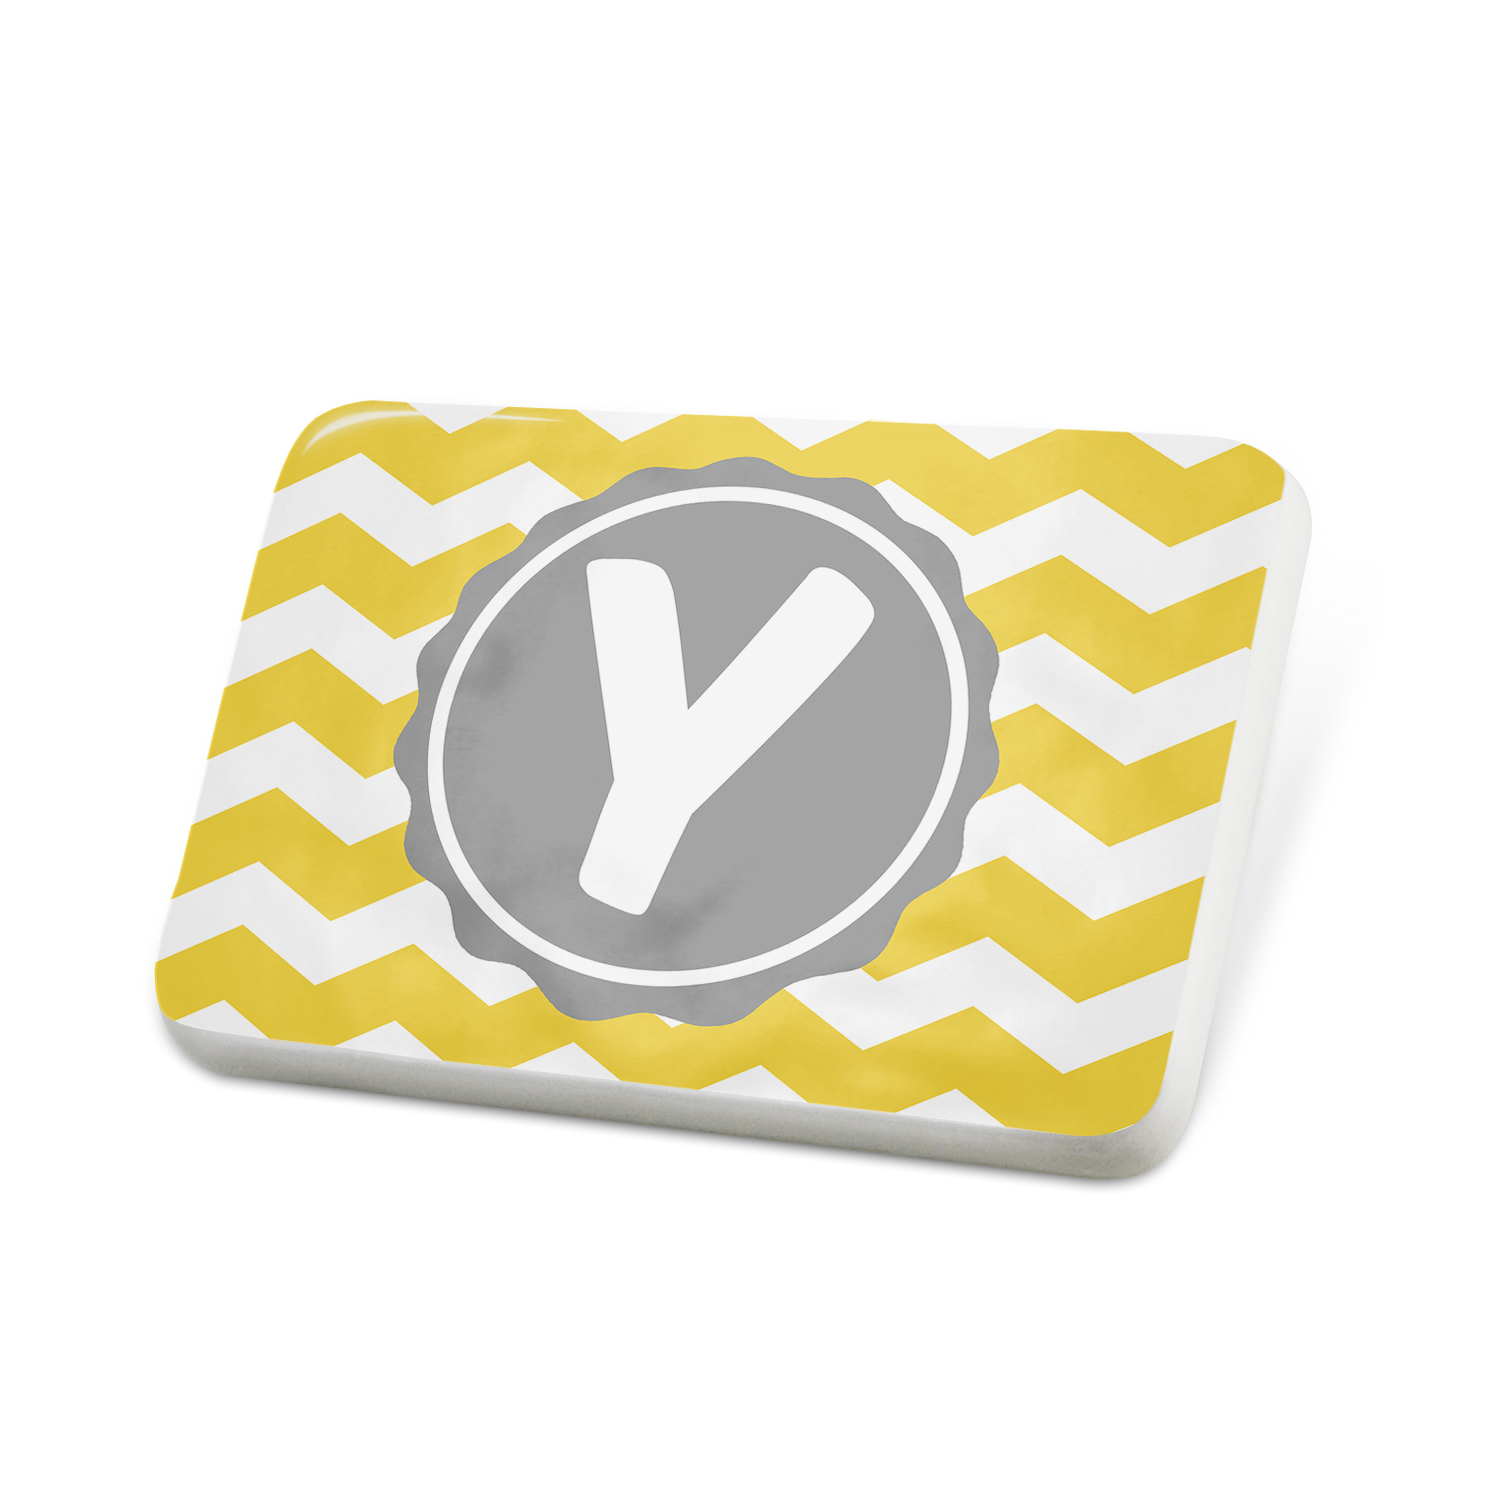 Porcelein Pin Monogram Y Yellow Grey Chevron Lapel Badge � NEONBLOND by NEONBLOND